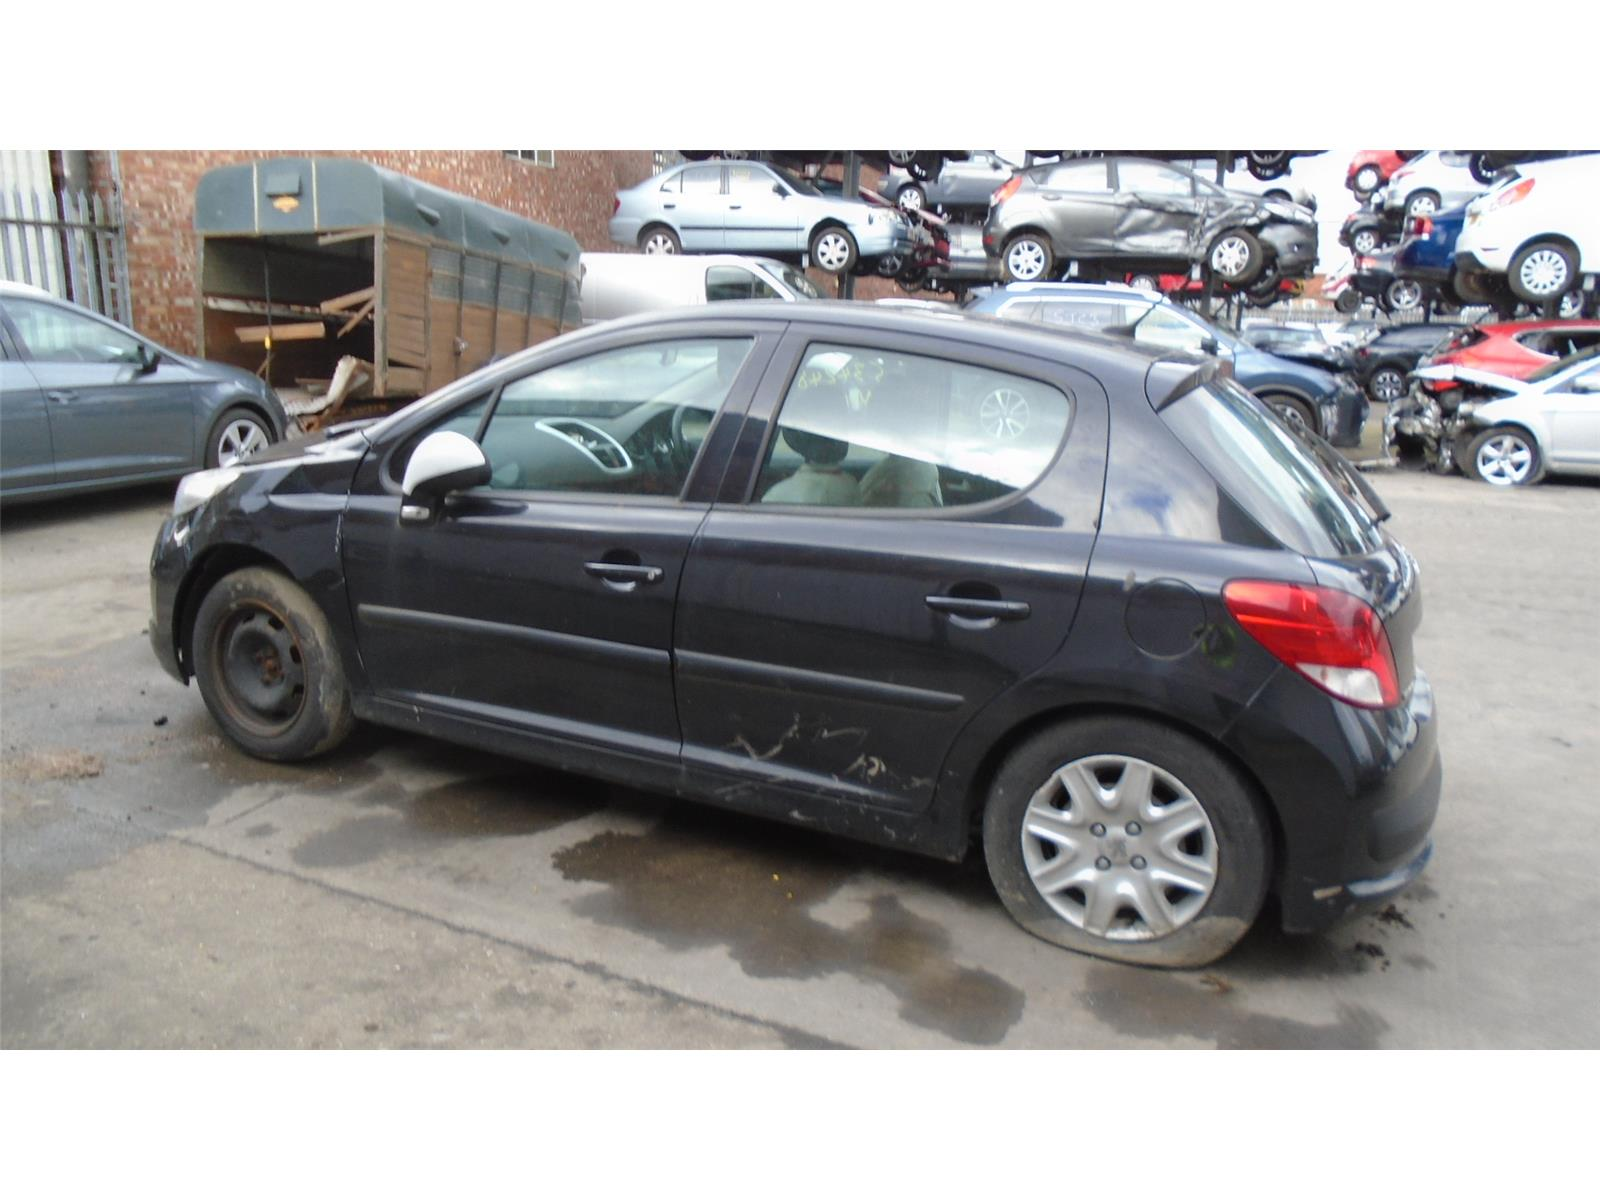 Peugeot 207 2009 On Fuse Box Petrol Manual For Sale From 206